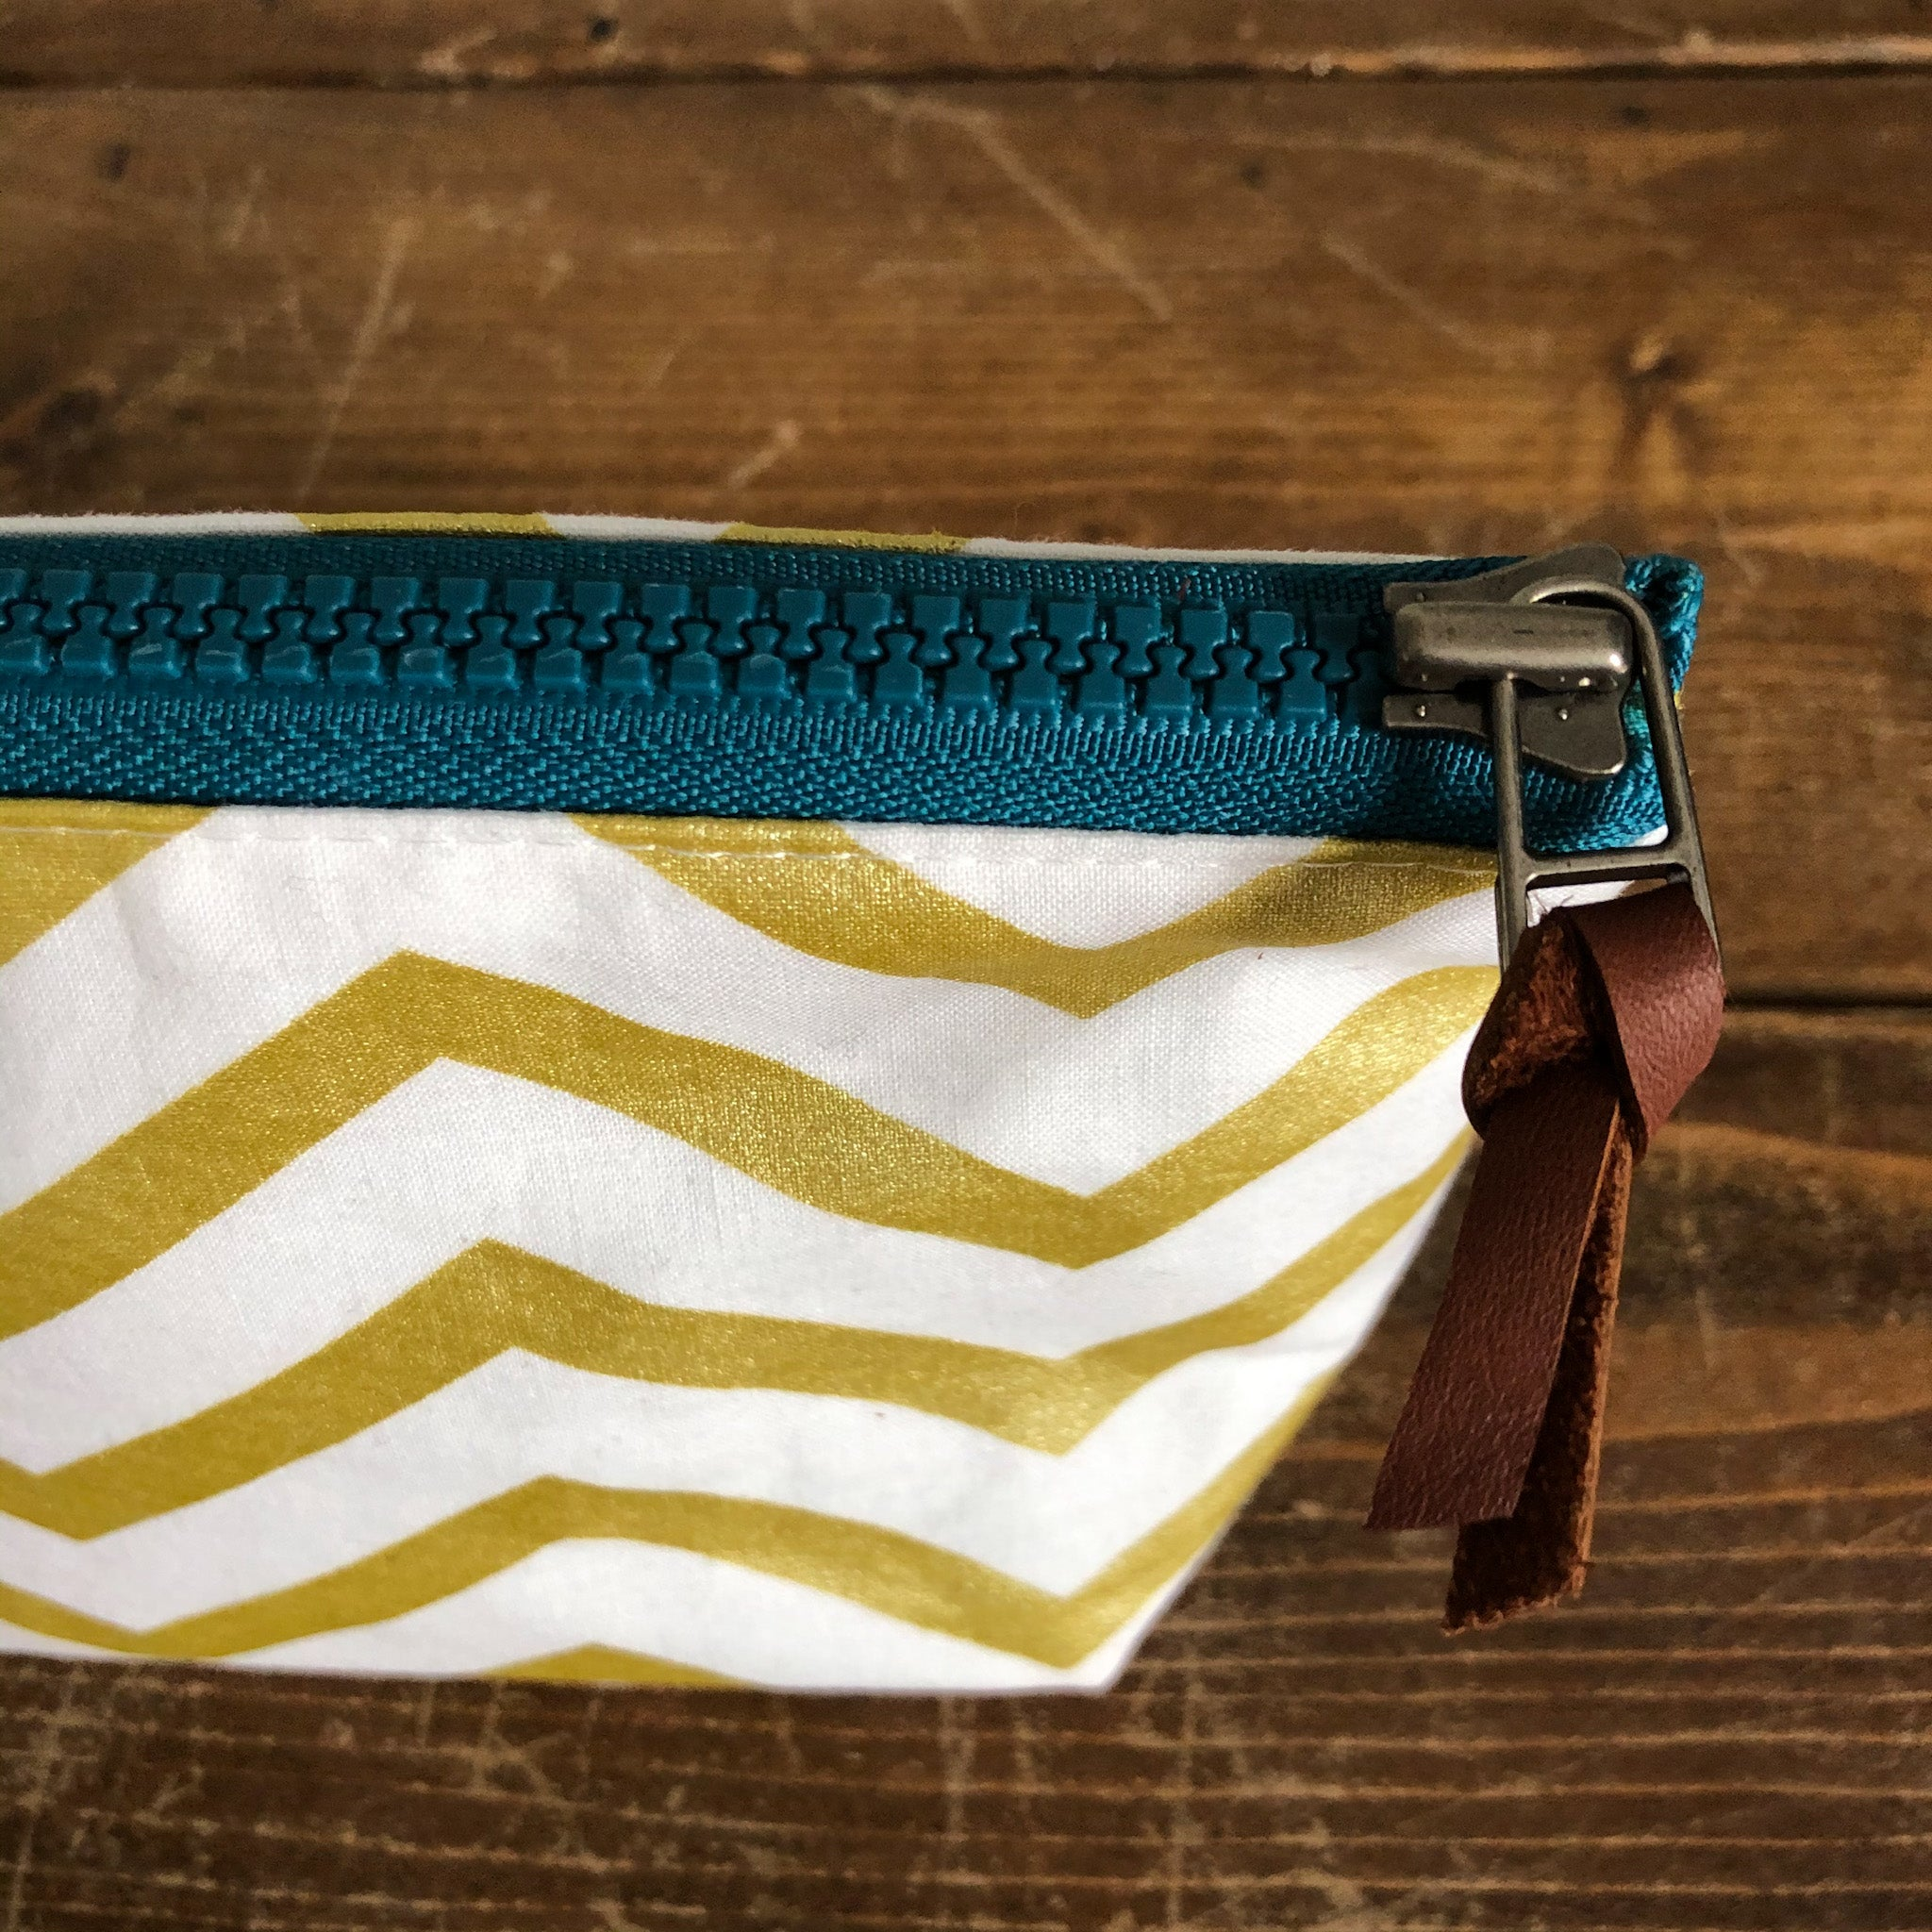 Sonder Bag/Pouch - Gold Chevron